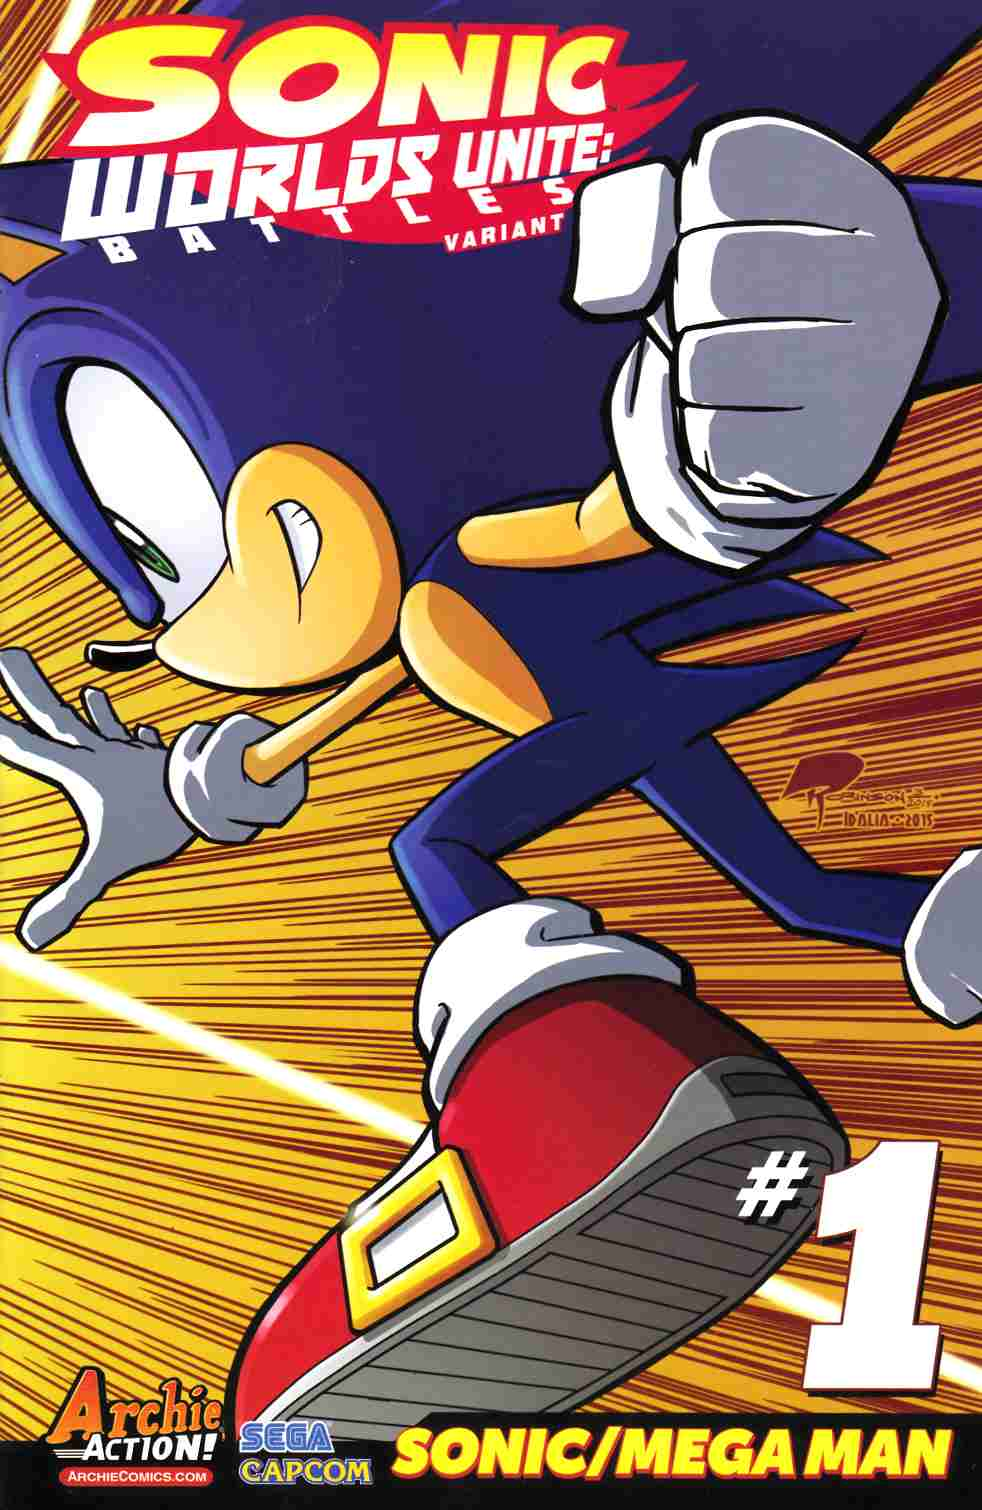 Sonic Worlds Unite Battles #1 Robinson Variant Cover [Archie Comic]